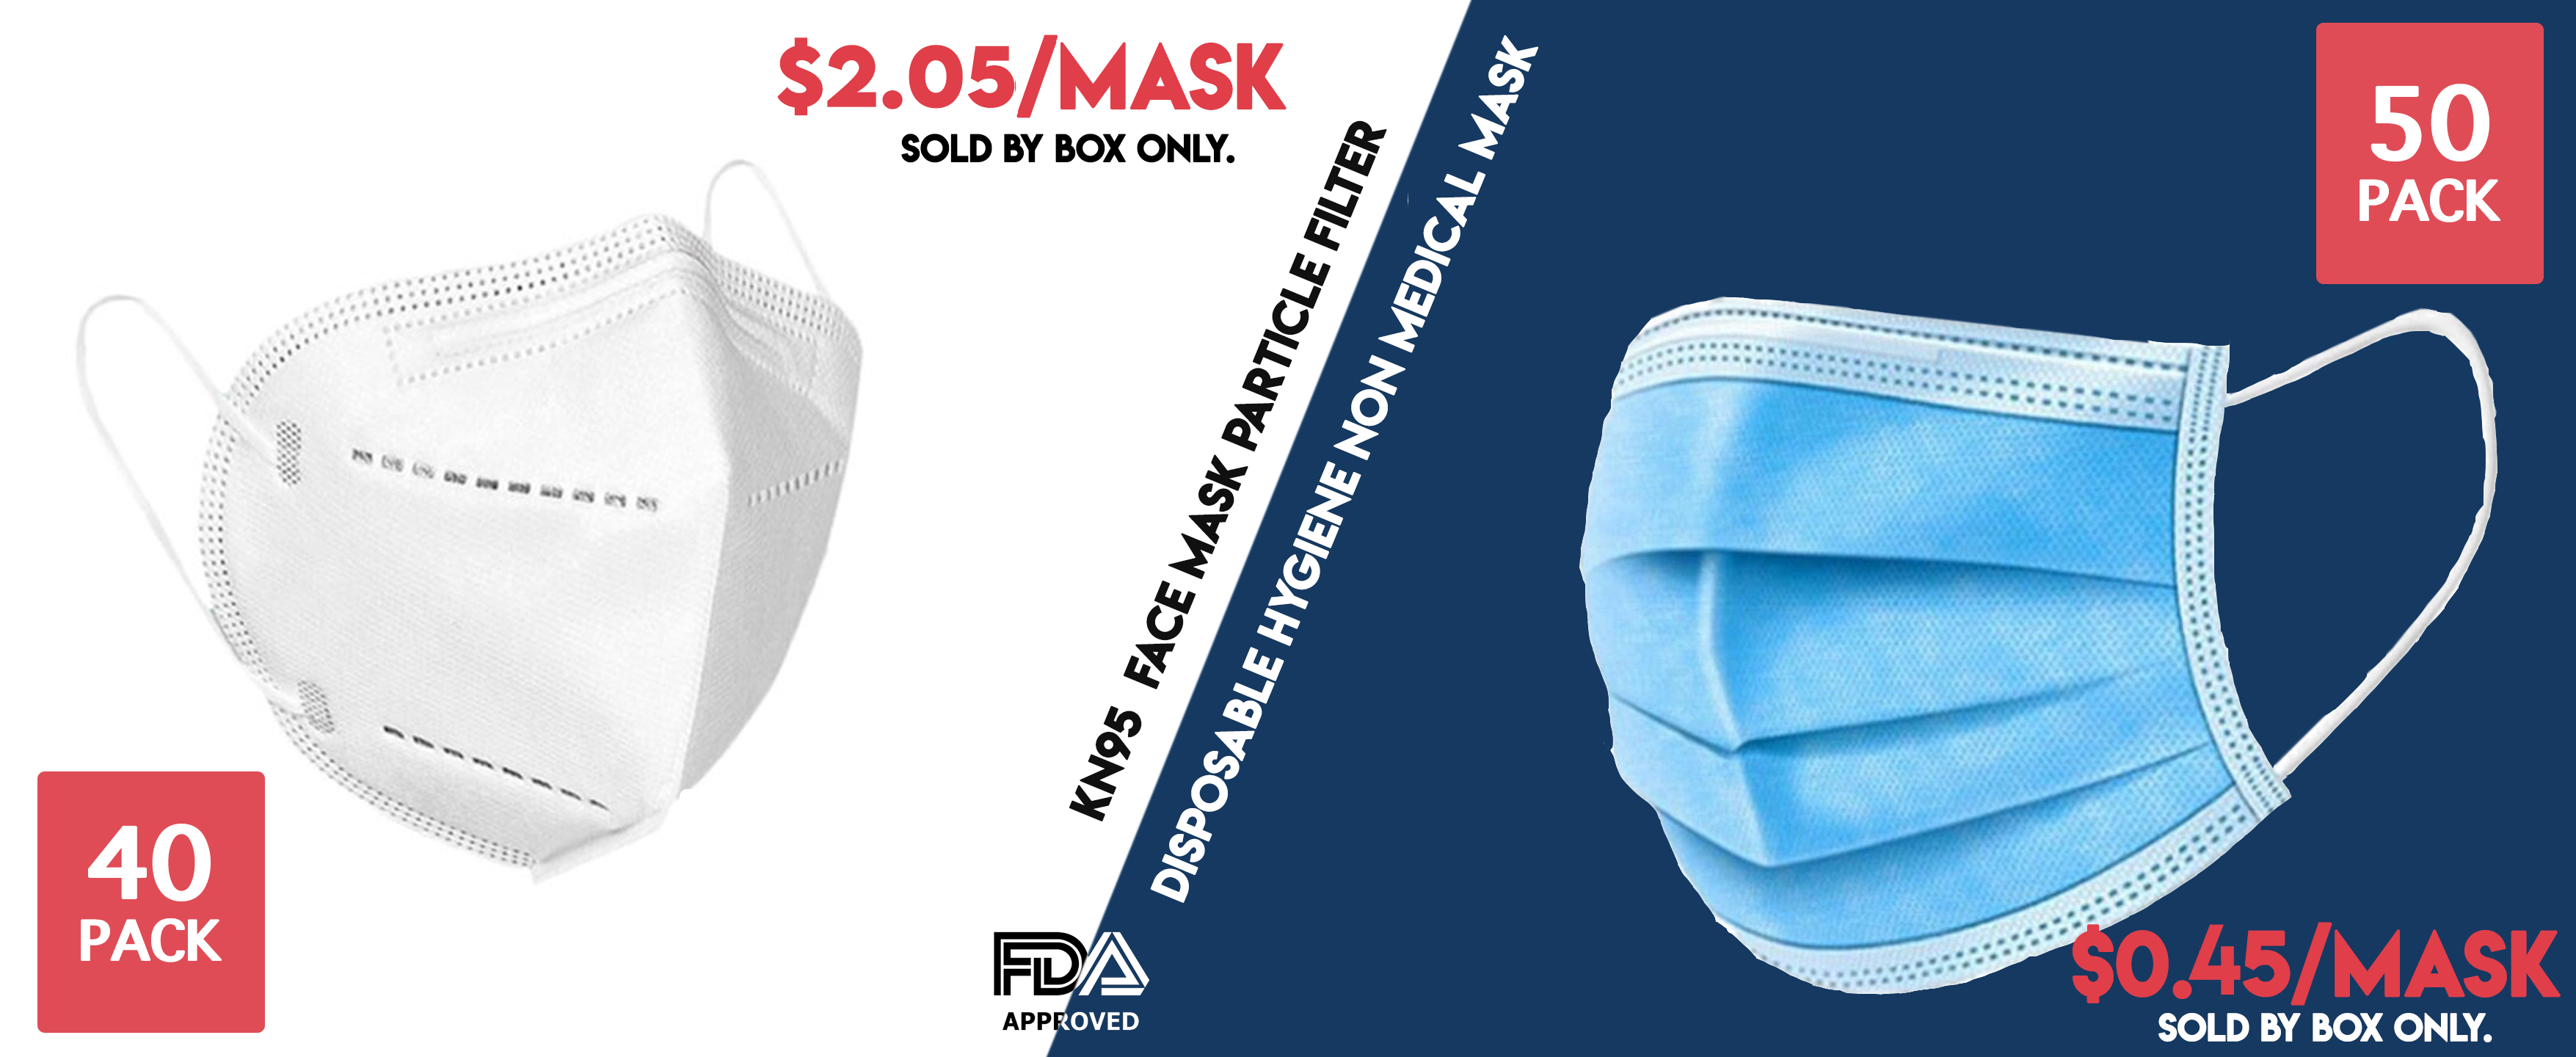 Updated Mask Sale 06a